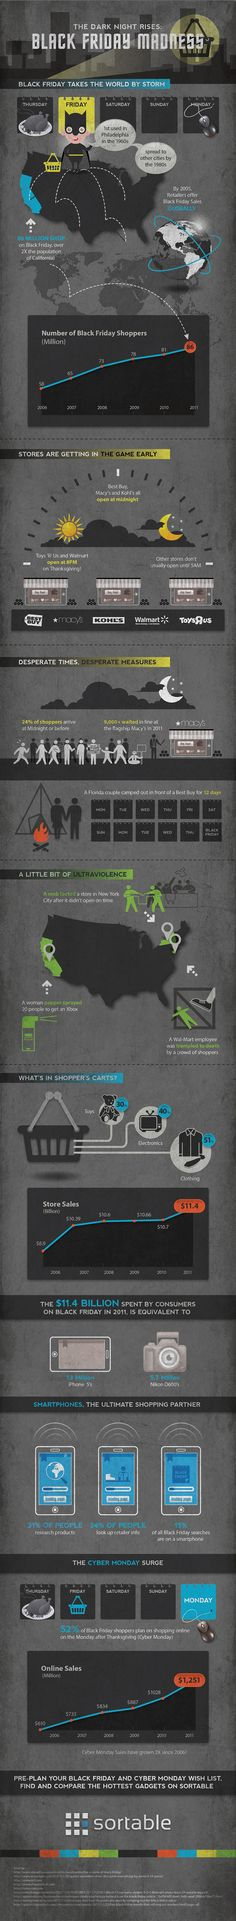 The Popularity of Black Friday Infographic